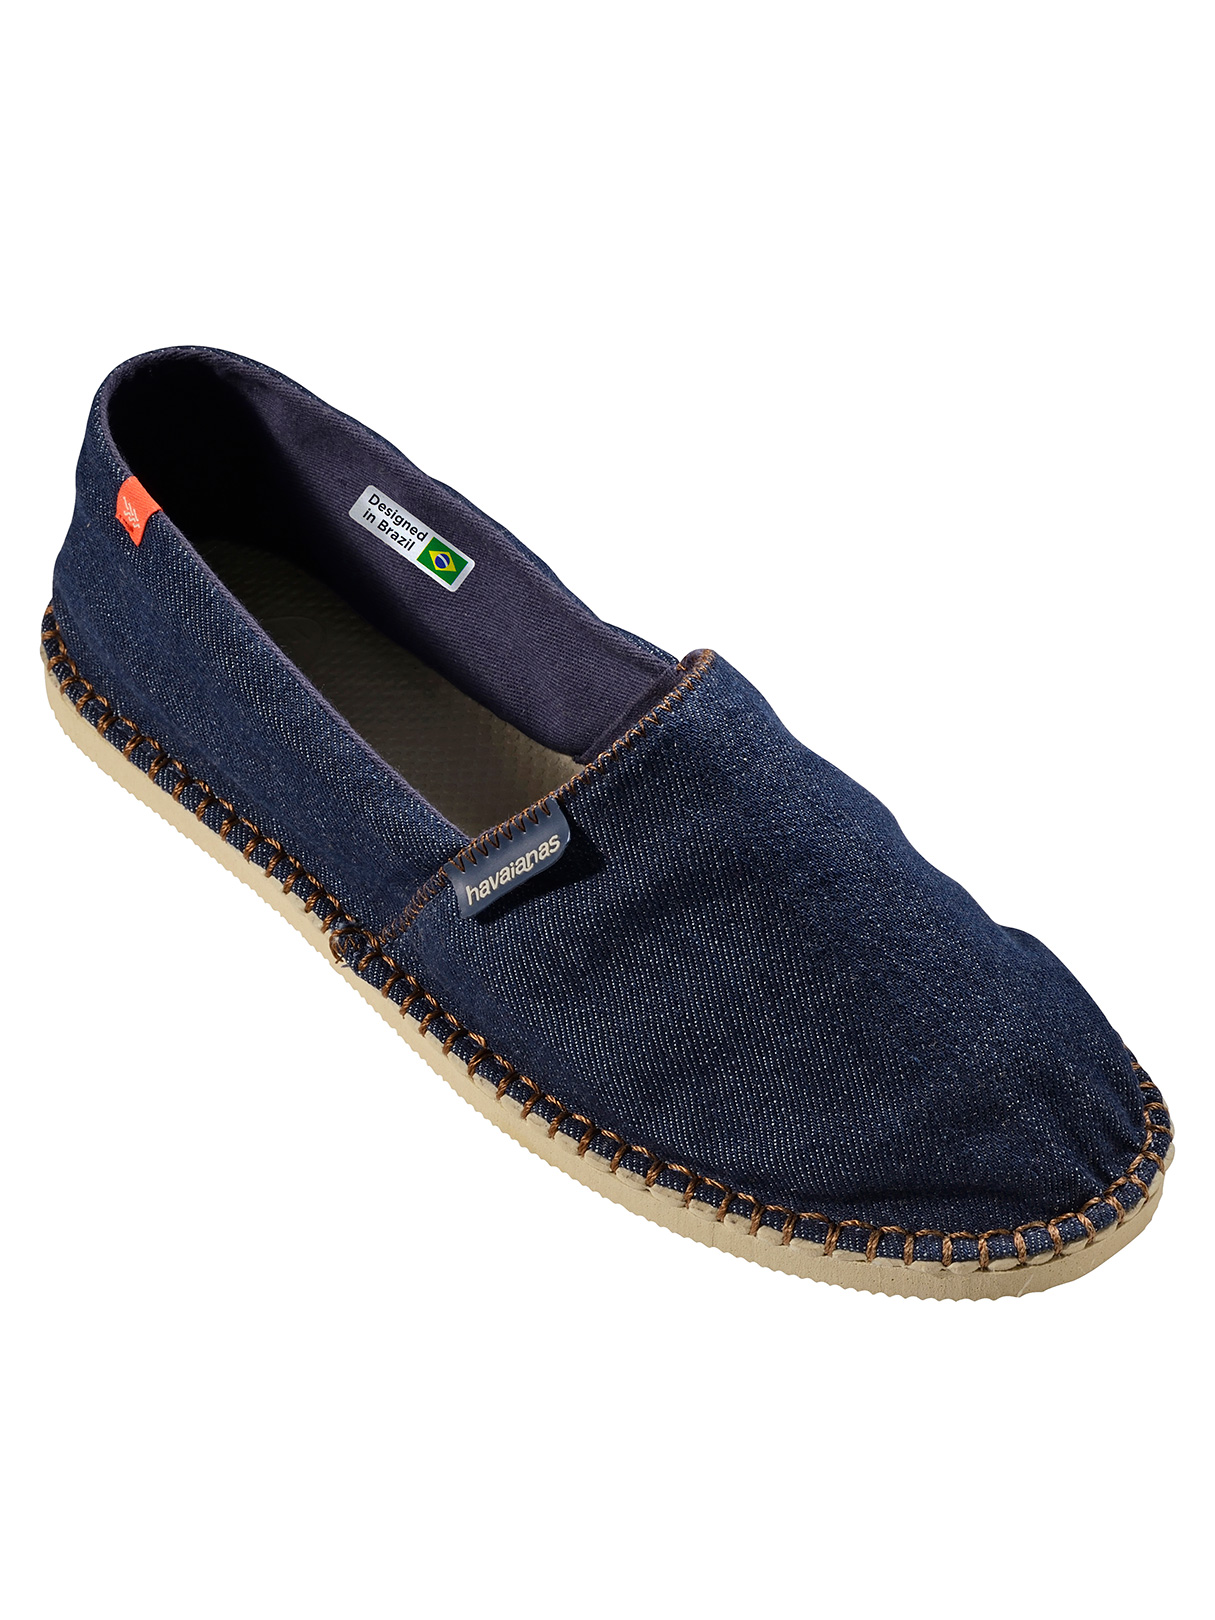 havaianas herren origine relax iii espadrilles blau ebay. Black Bedroom Furniture Sets. Home Design Ideas